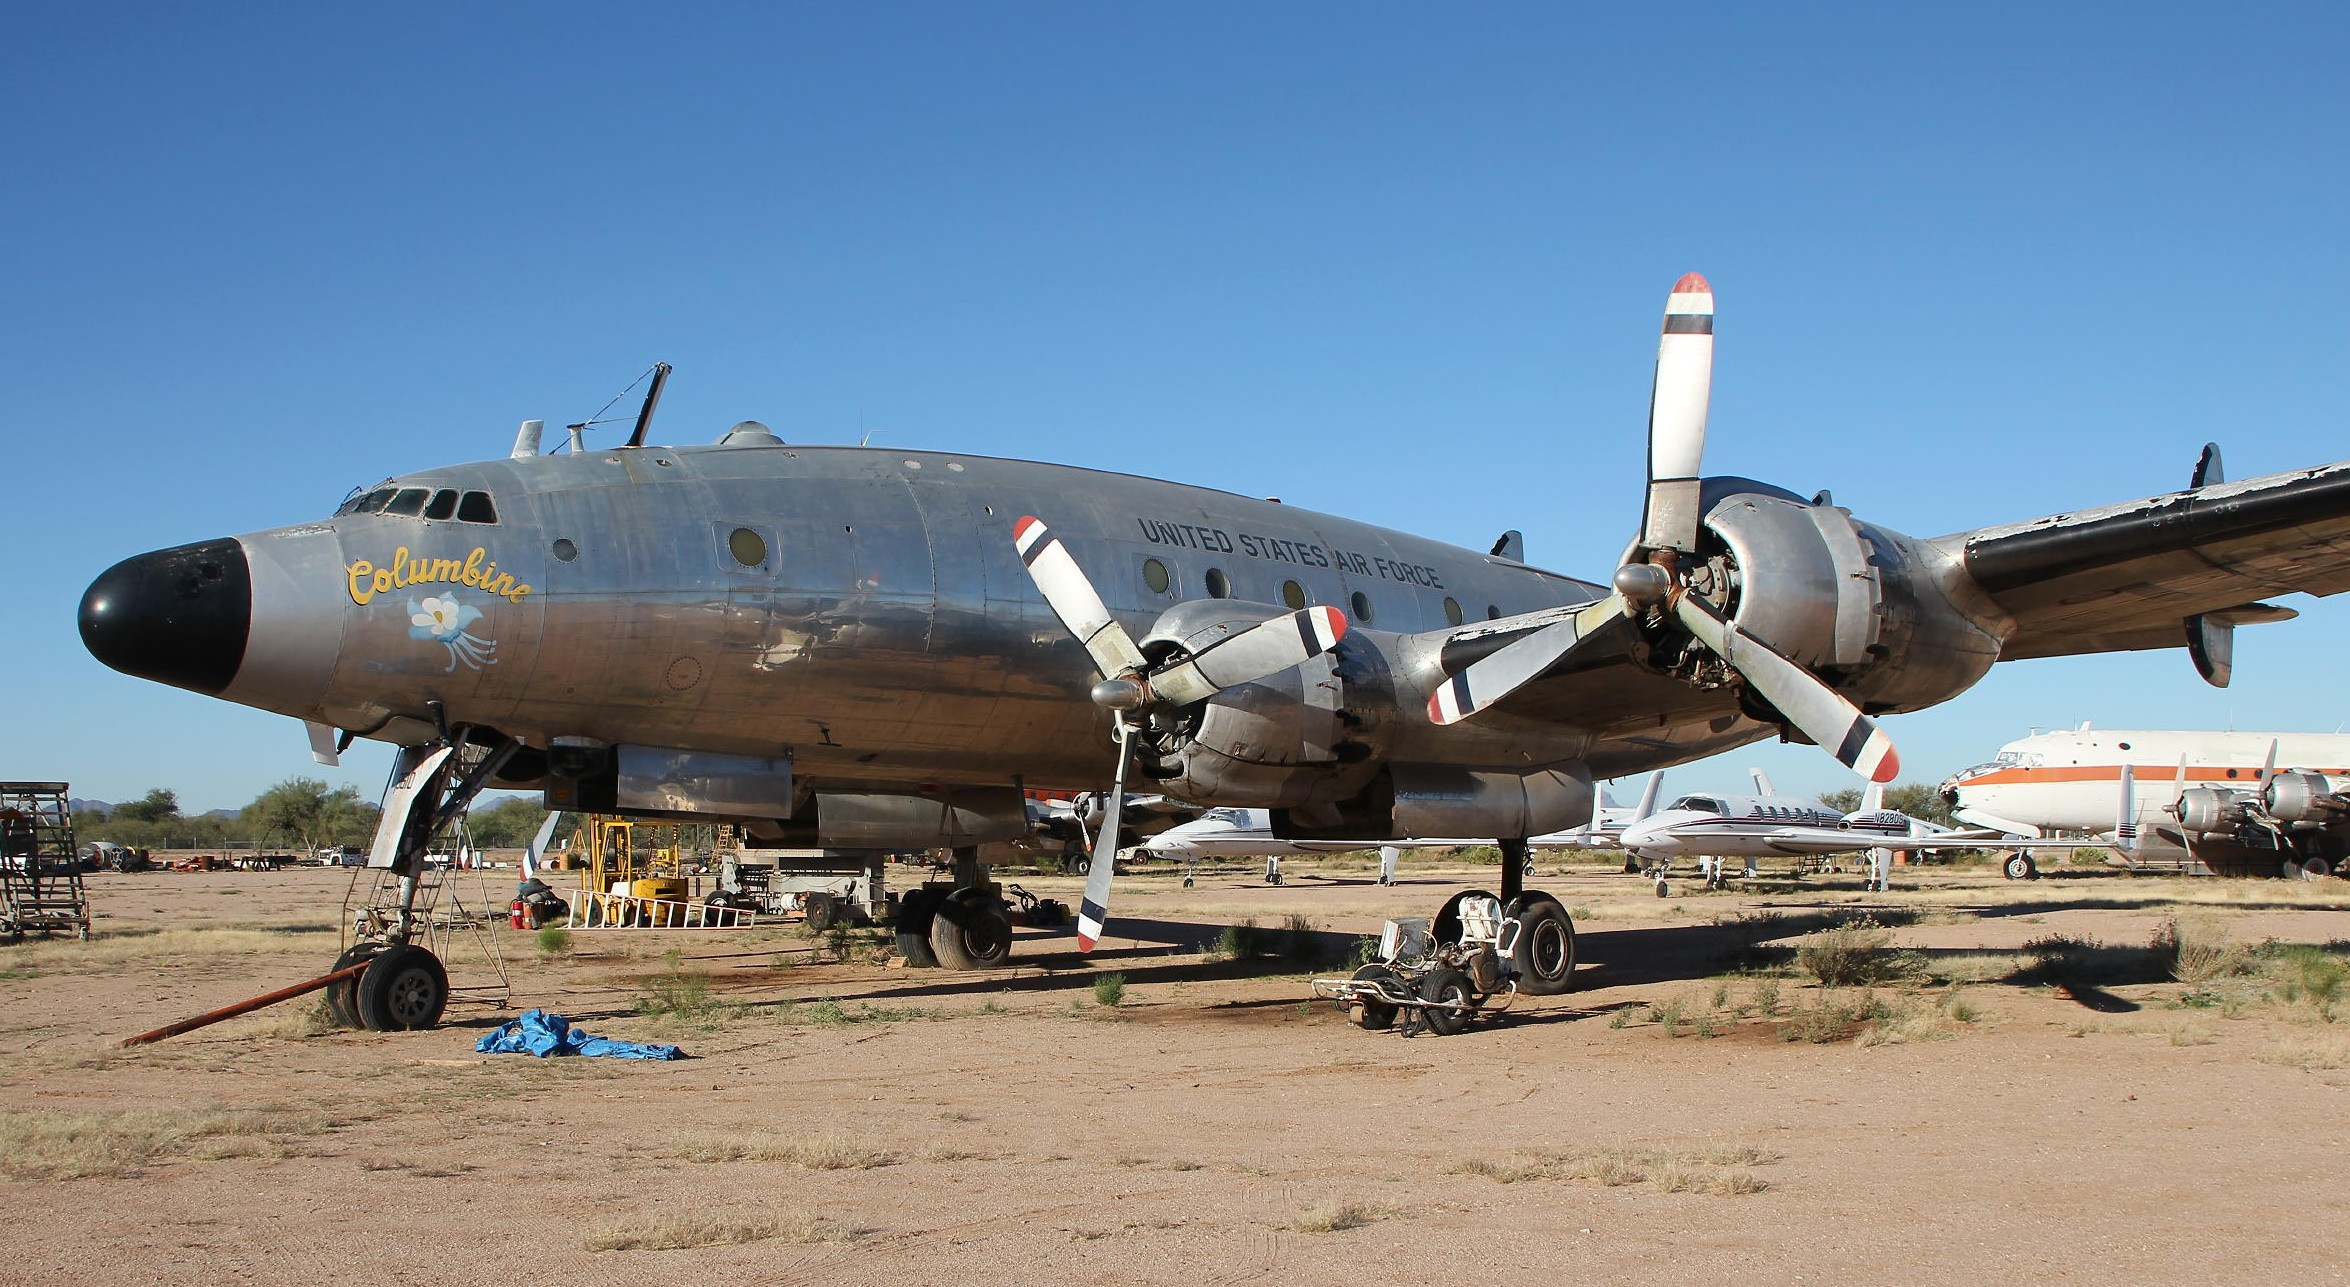 Columbine II at the Marana Air Park in Marana, Arizona in mid-November, 2014 when Ken Stoltzfus of Dynamic Aviation paid her a visit. (Ken Stoltzfus photo)